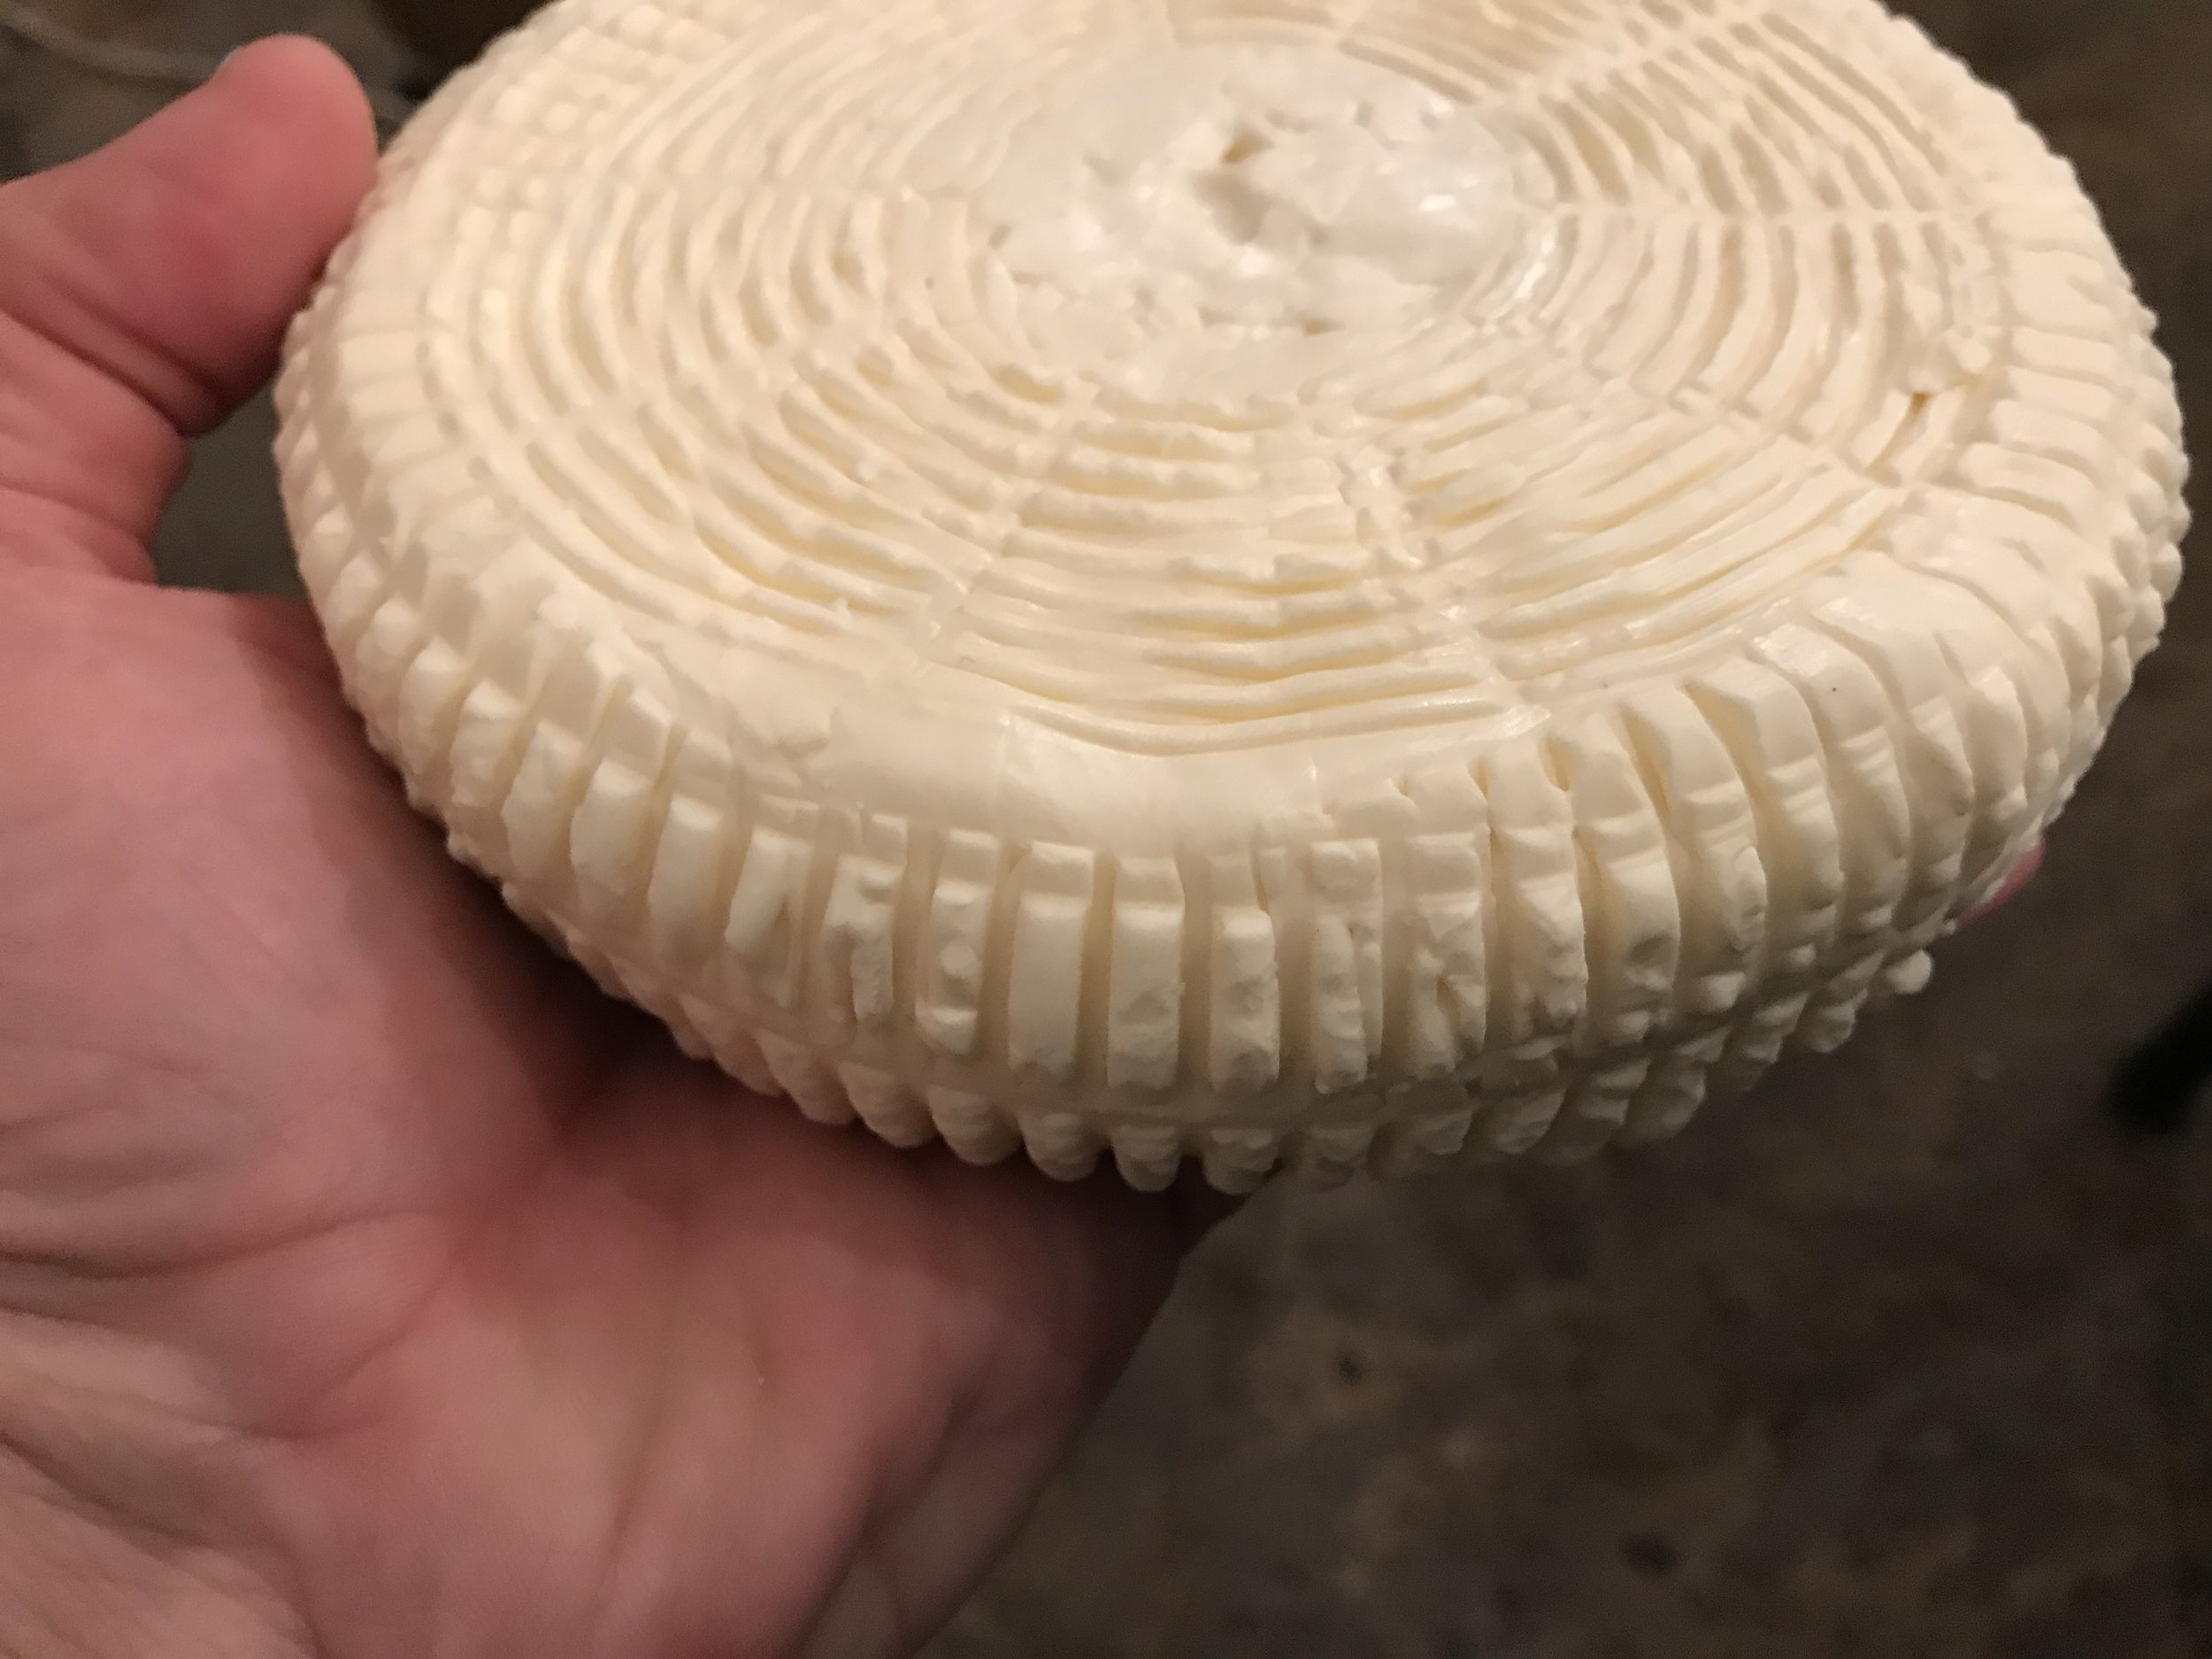 The camembert is ready to put into the curing box